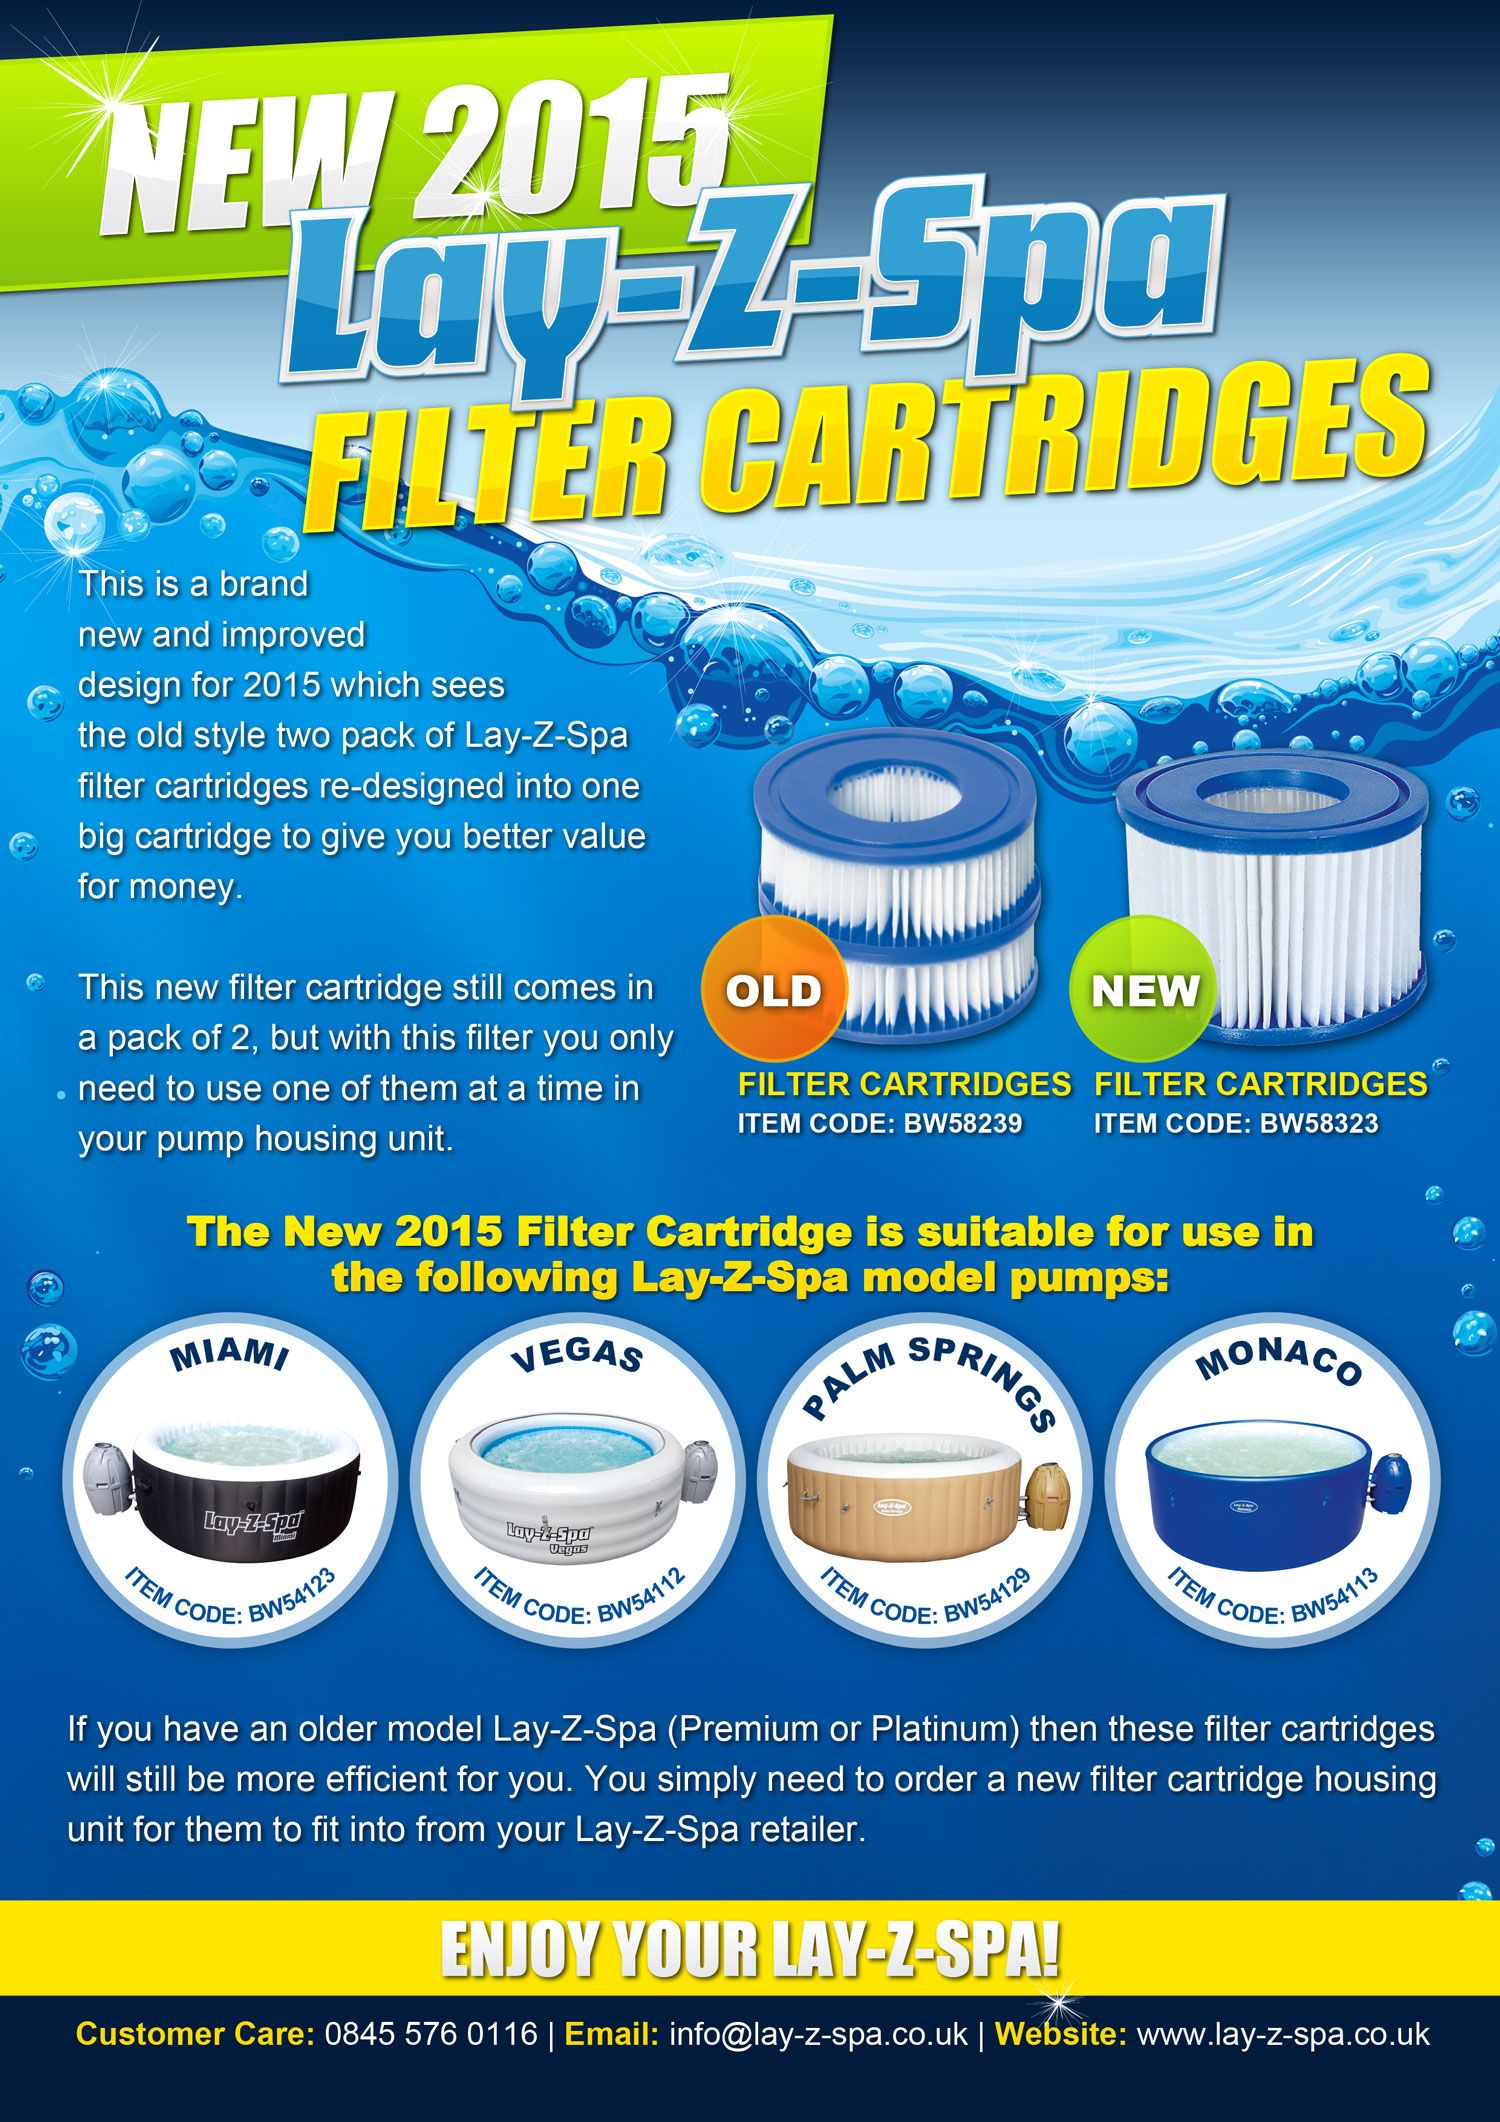 How are the new layzspa filter cartridges different